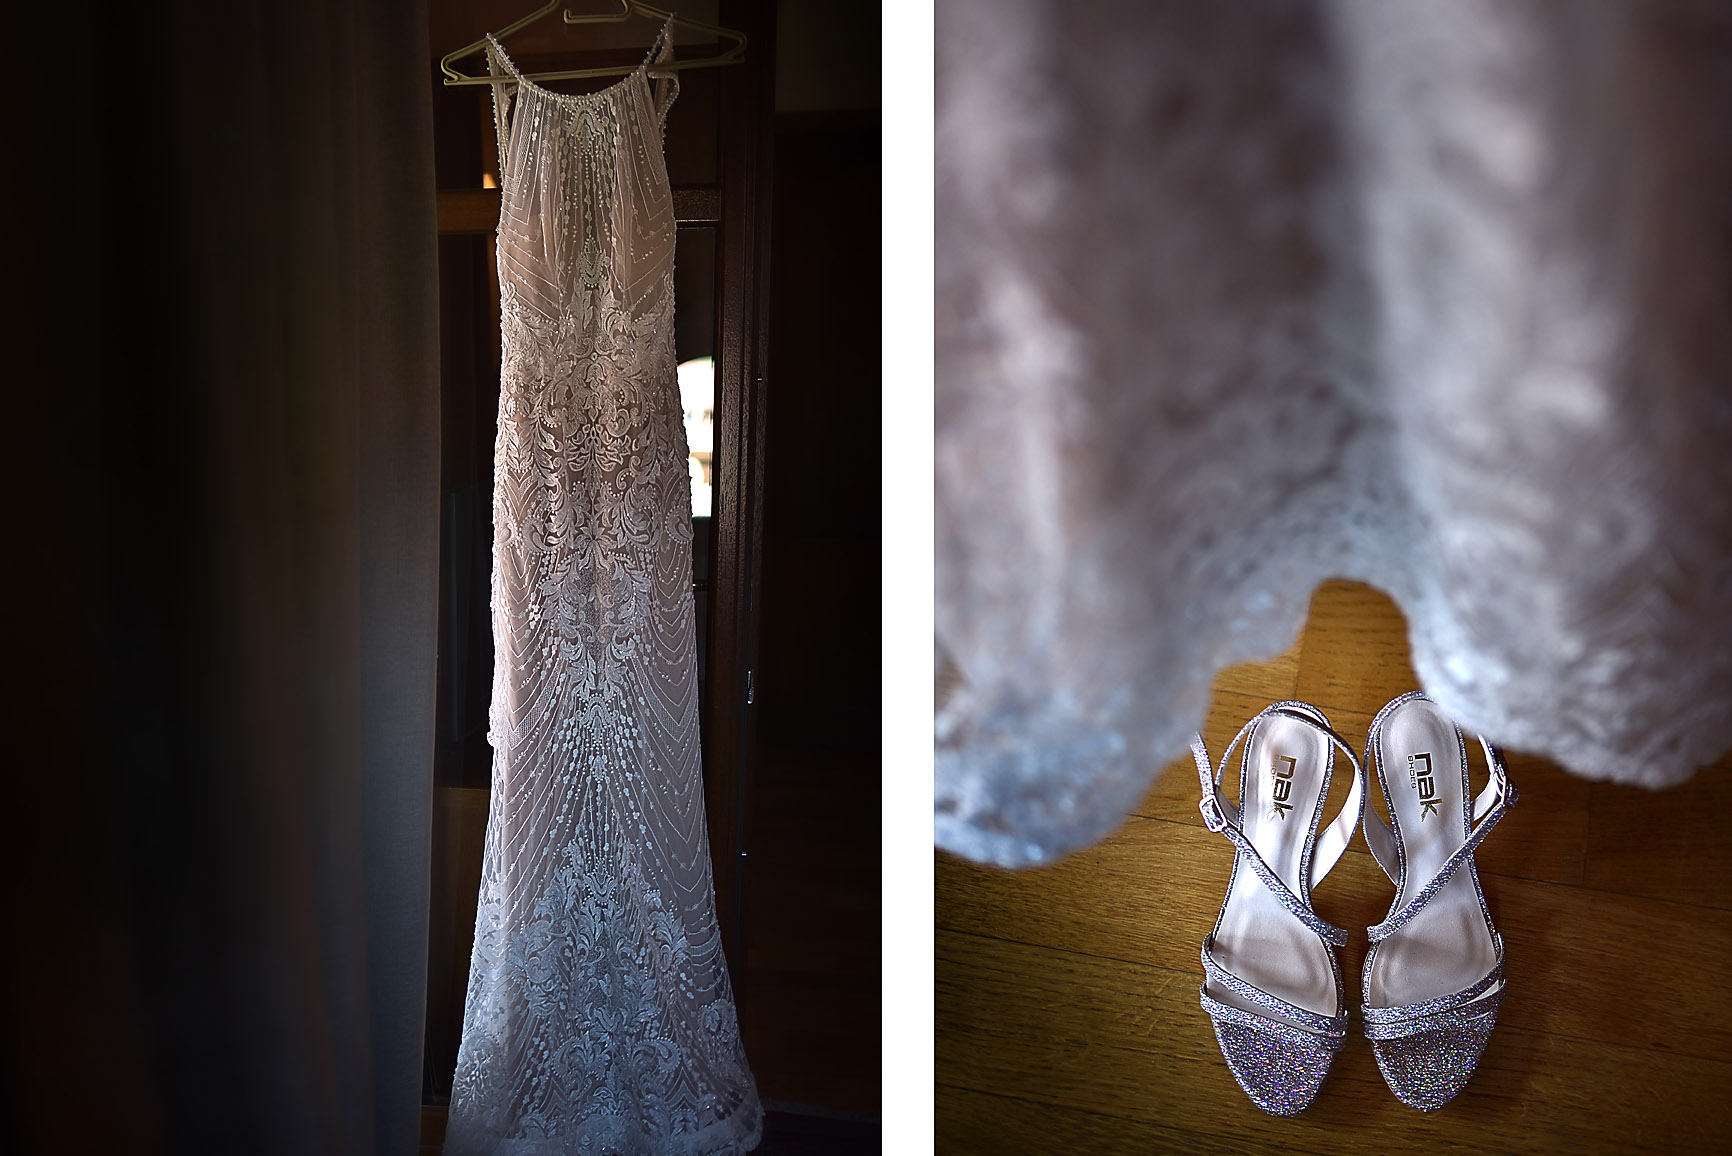 bride-dress-shoes-preparation-limni-plastira-hotel-kazarma-wedding-karditsa-02